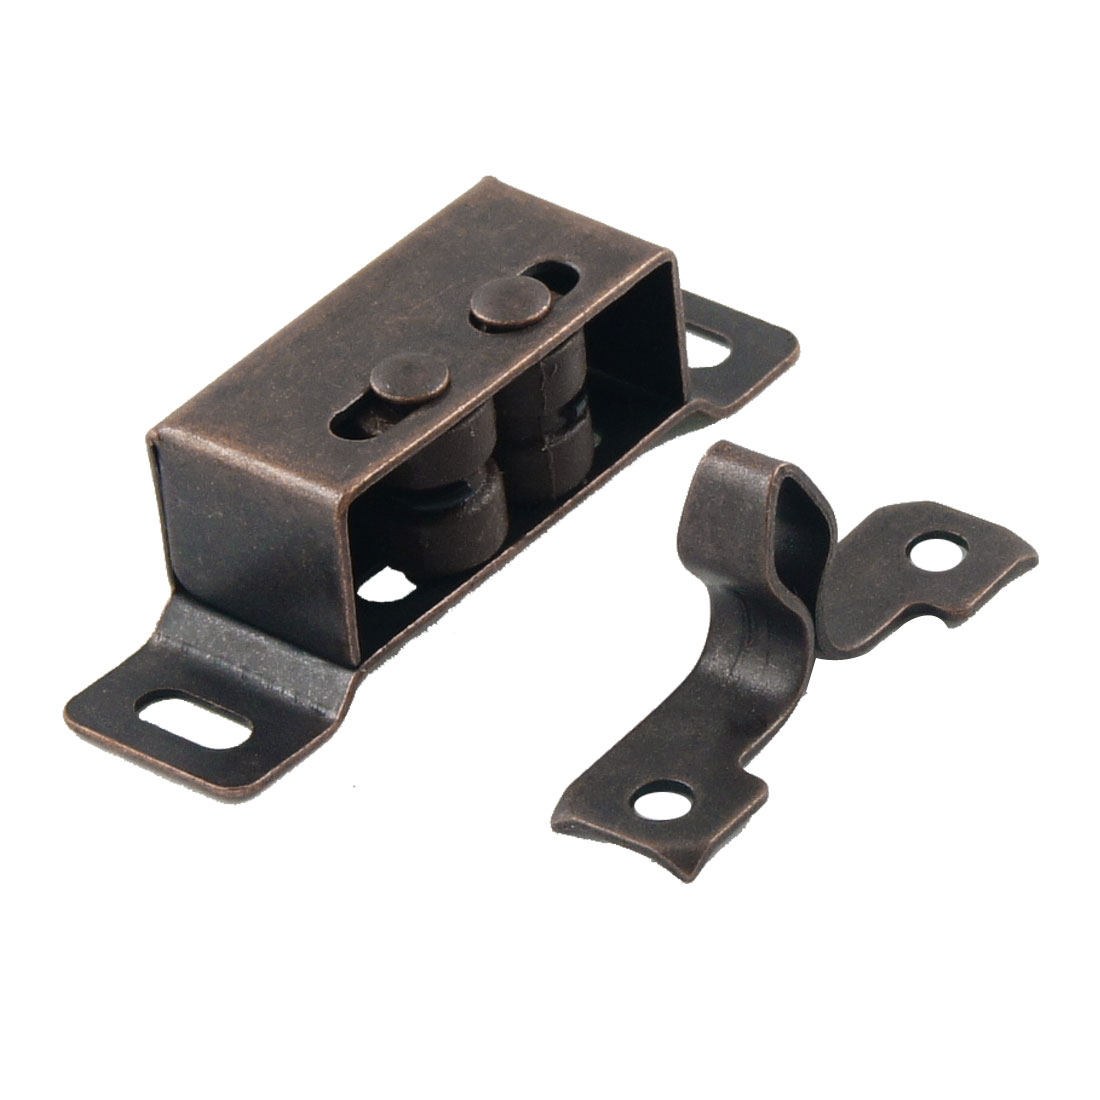 Copper Tone Cabinet Wardrobe Door Ball Roller Latch Catch 1.8""